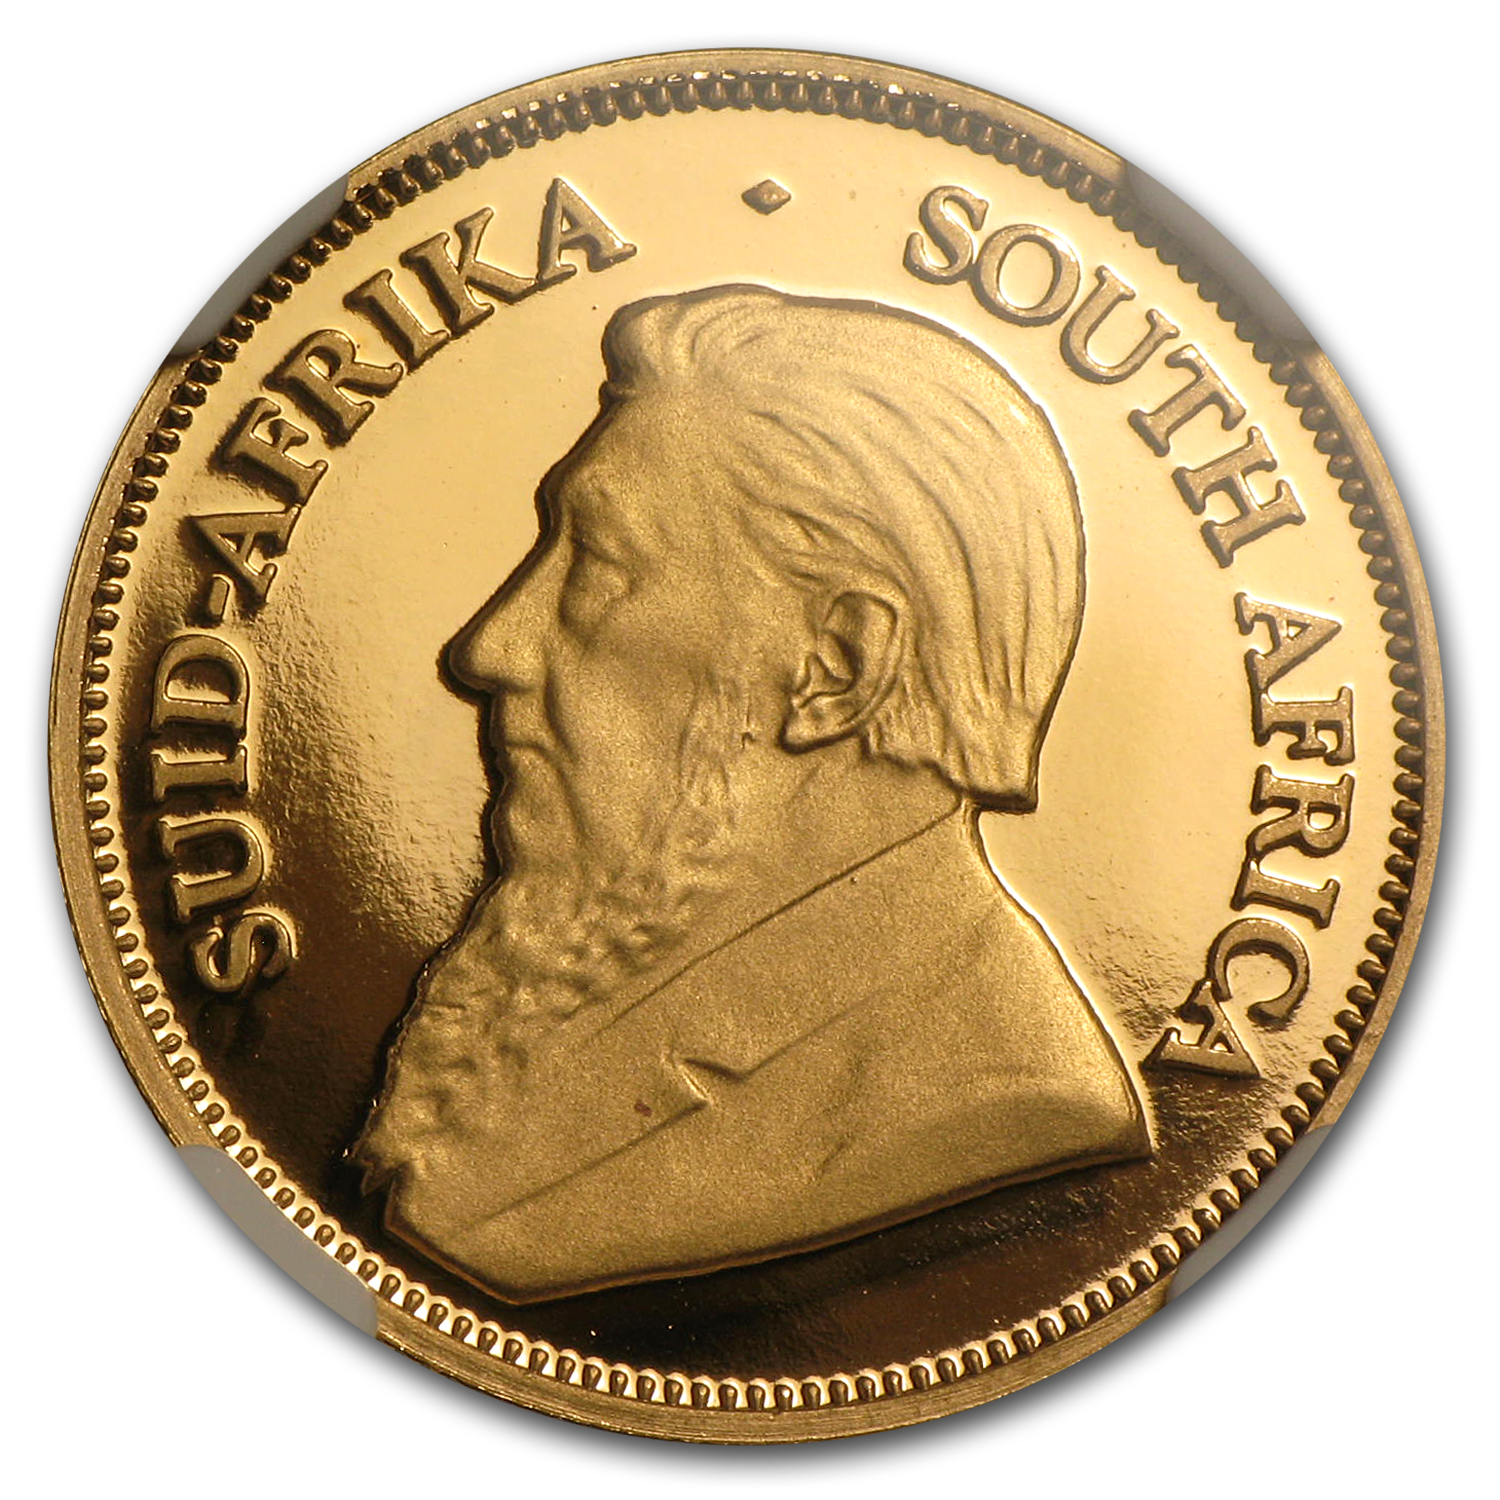 2002 1/4 oz Gold South African Krugerrand PF-69 NGC